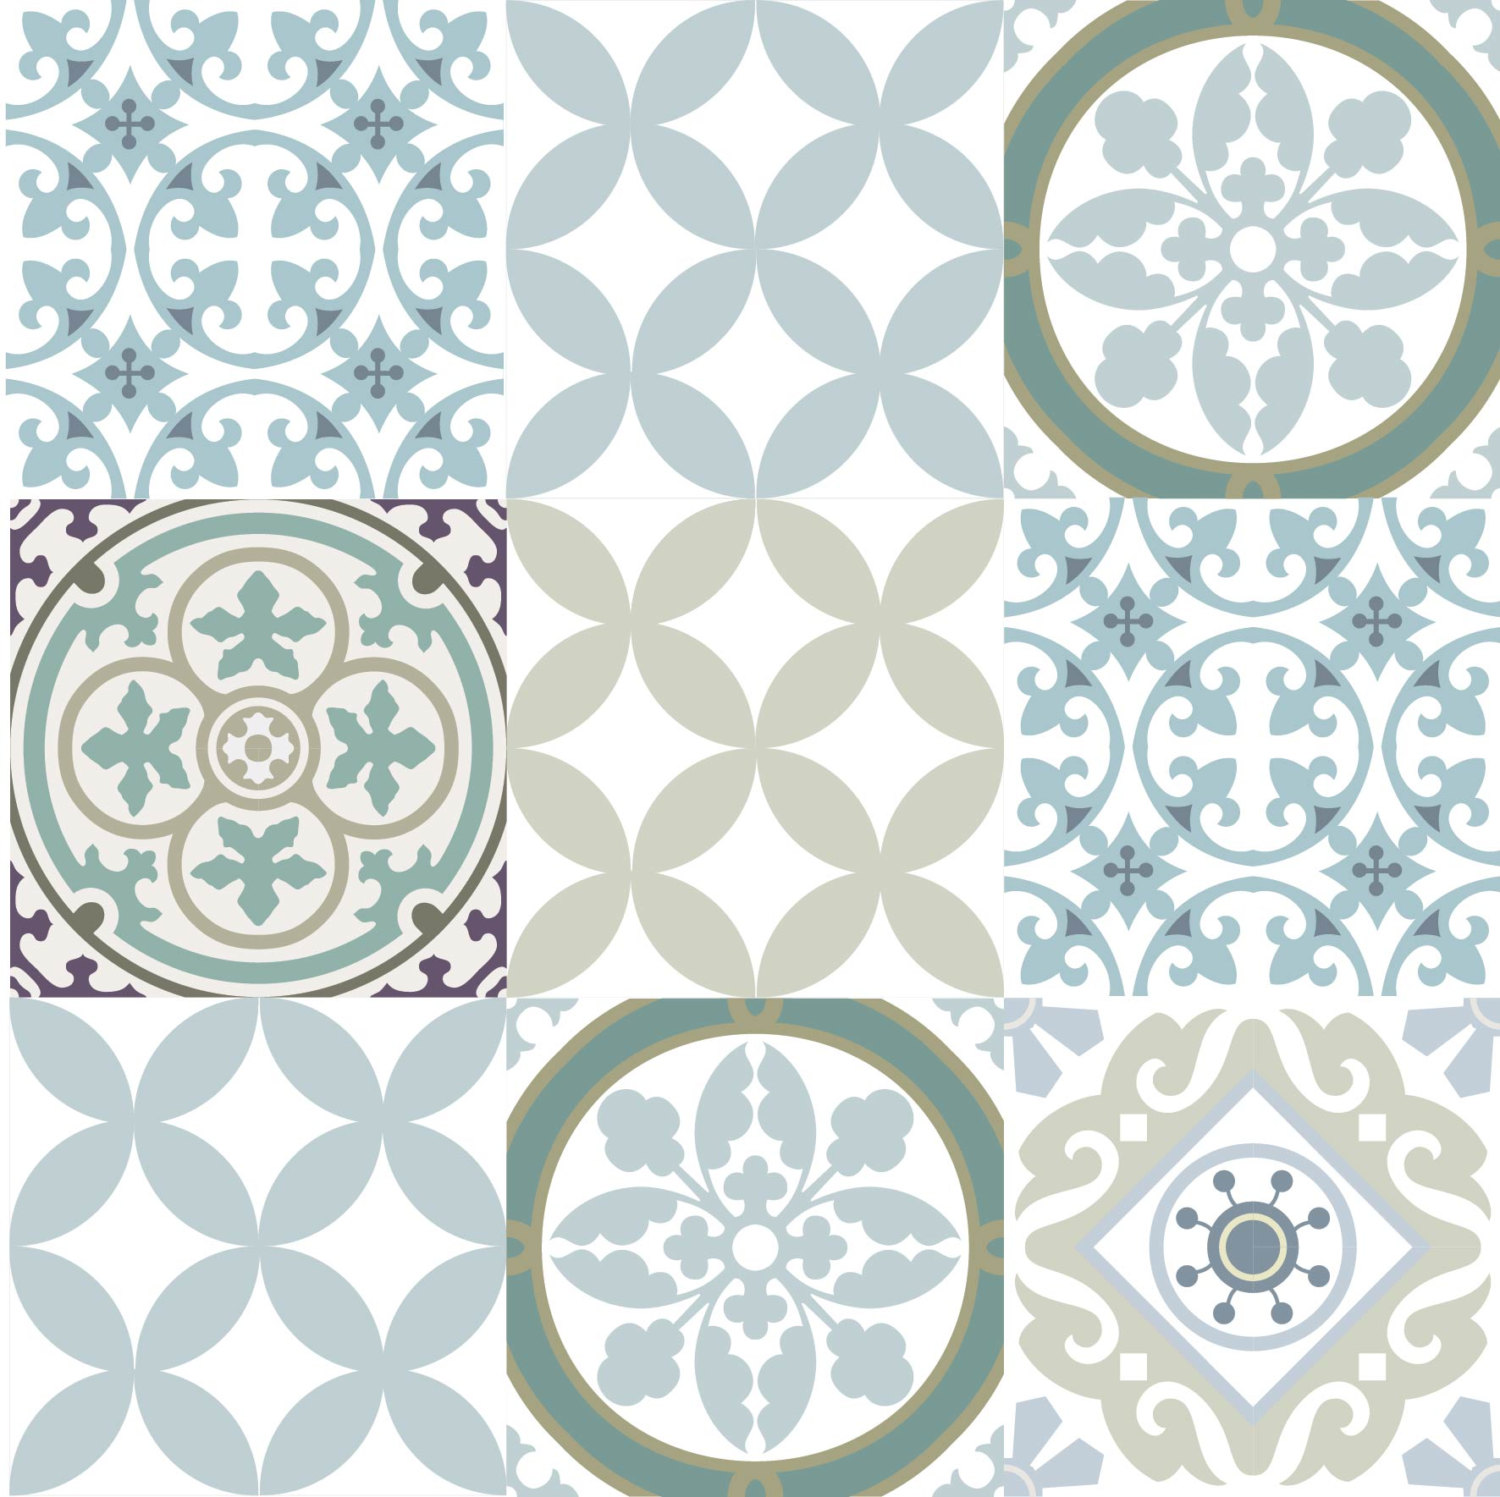 mix-tile-decals-kitchenbathroom-tiles-vinyl-floor-tiles-free-shipping-design-314-5897b15d5.jpg